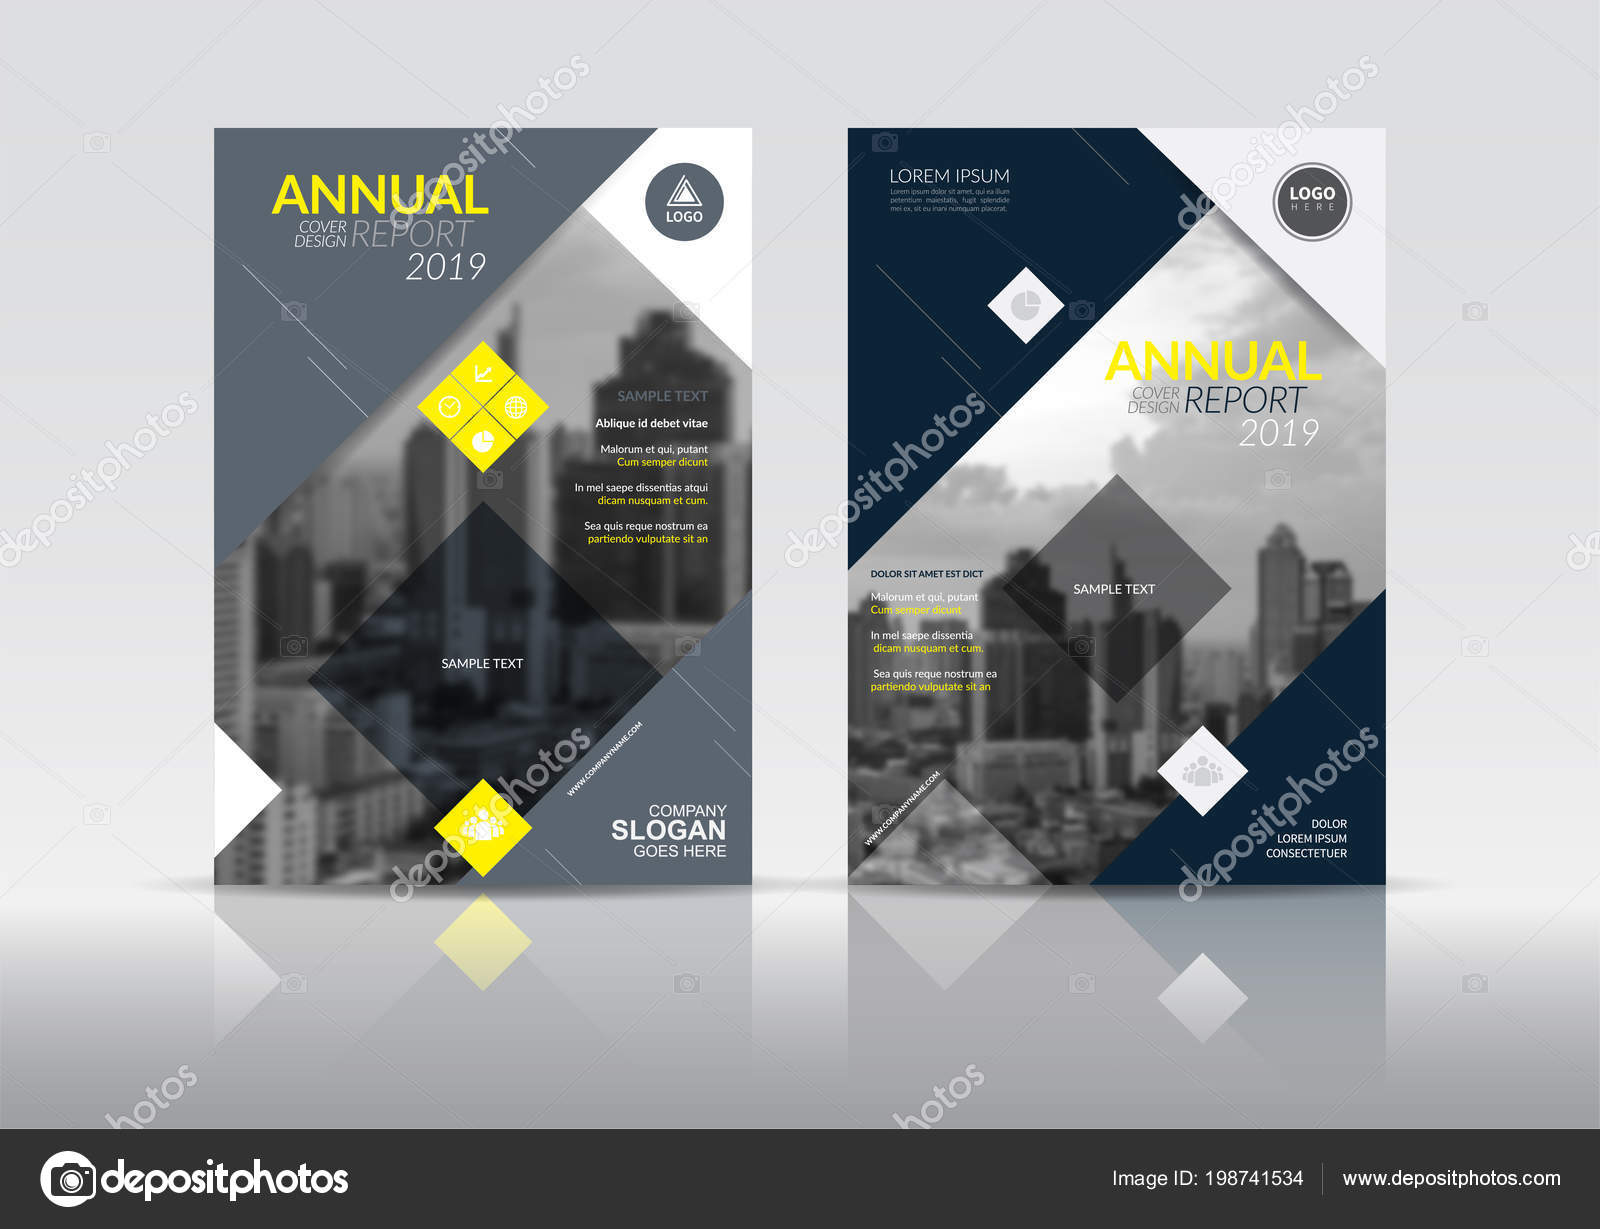 cover design template annual report cover flyer presentation, Presentation Front Page Template, Presentation templates